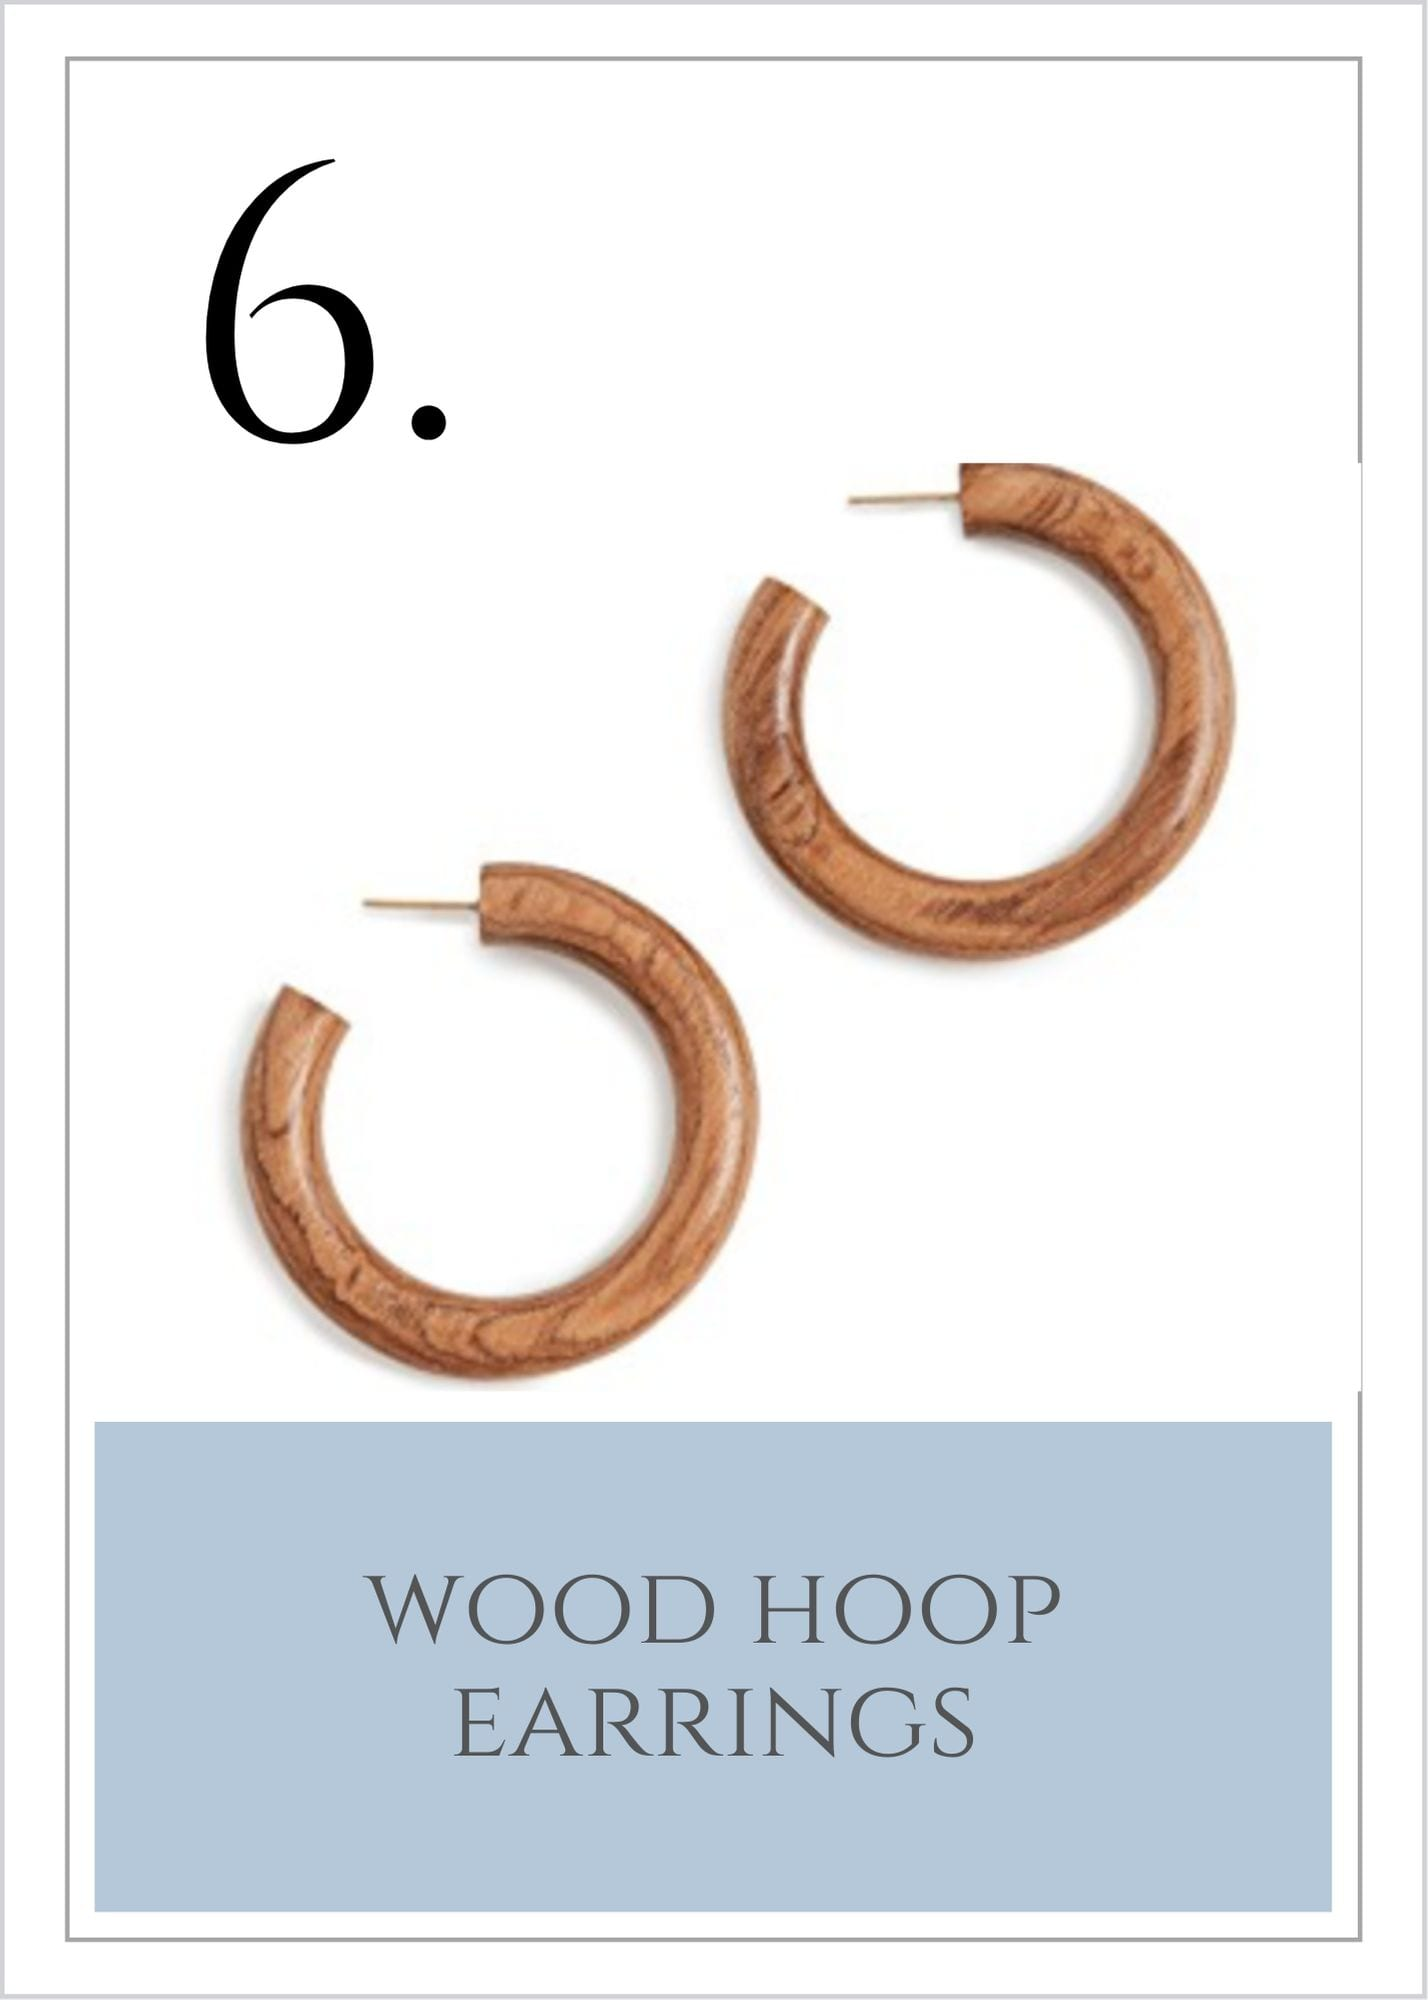 Wood Hoops from Shopbop. Pretty summer earrings.